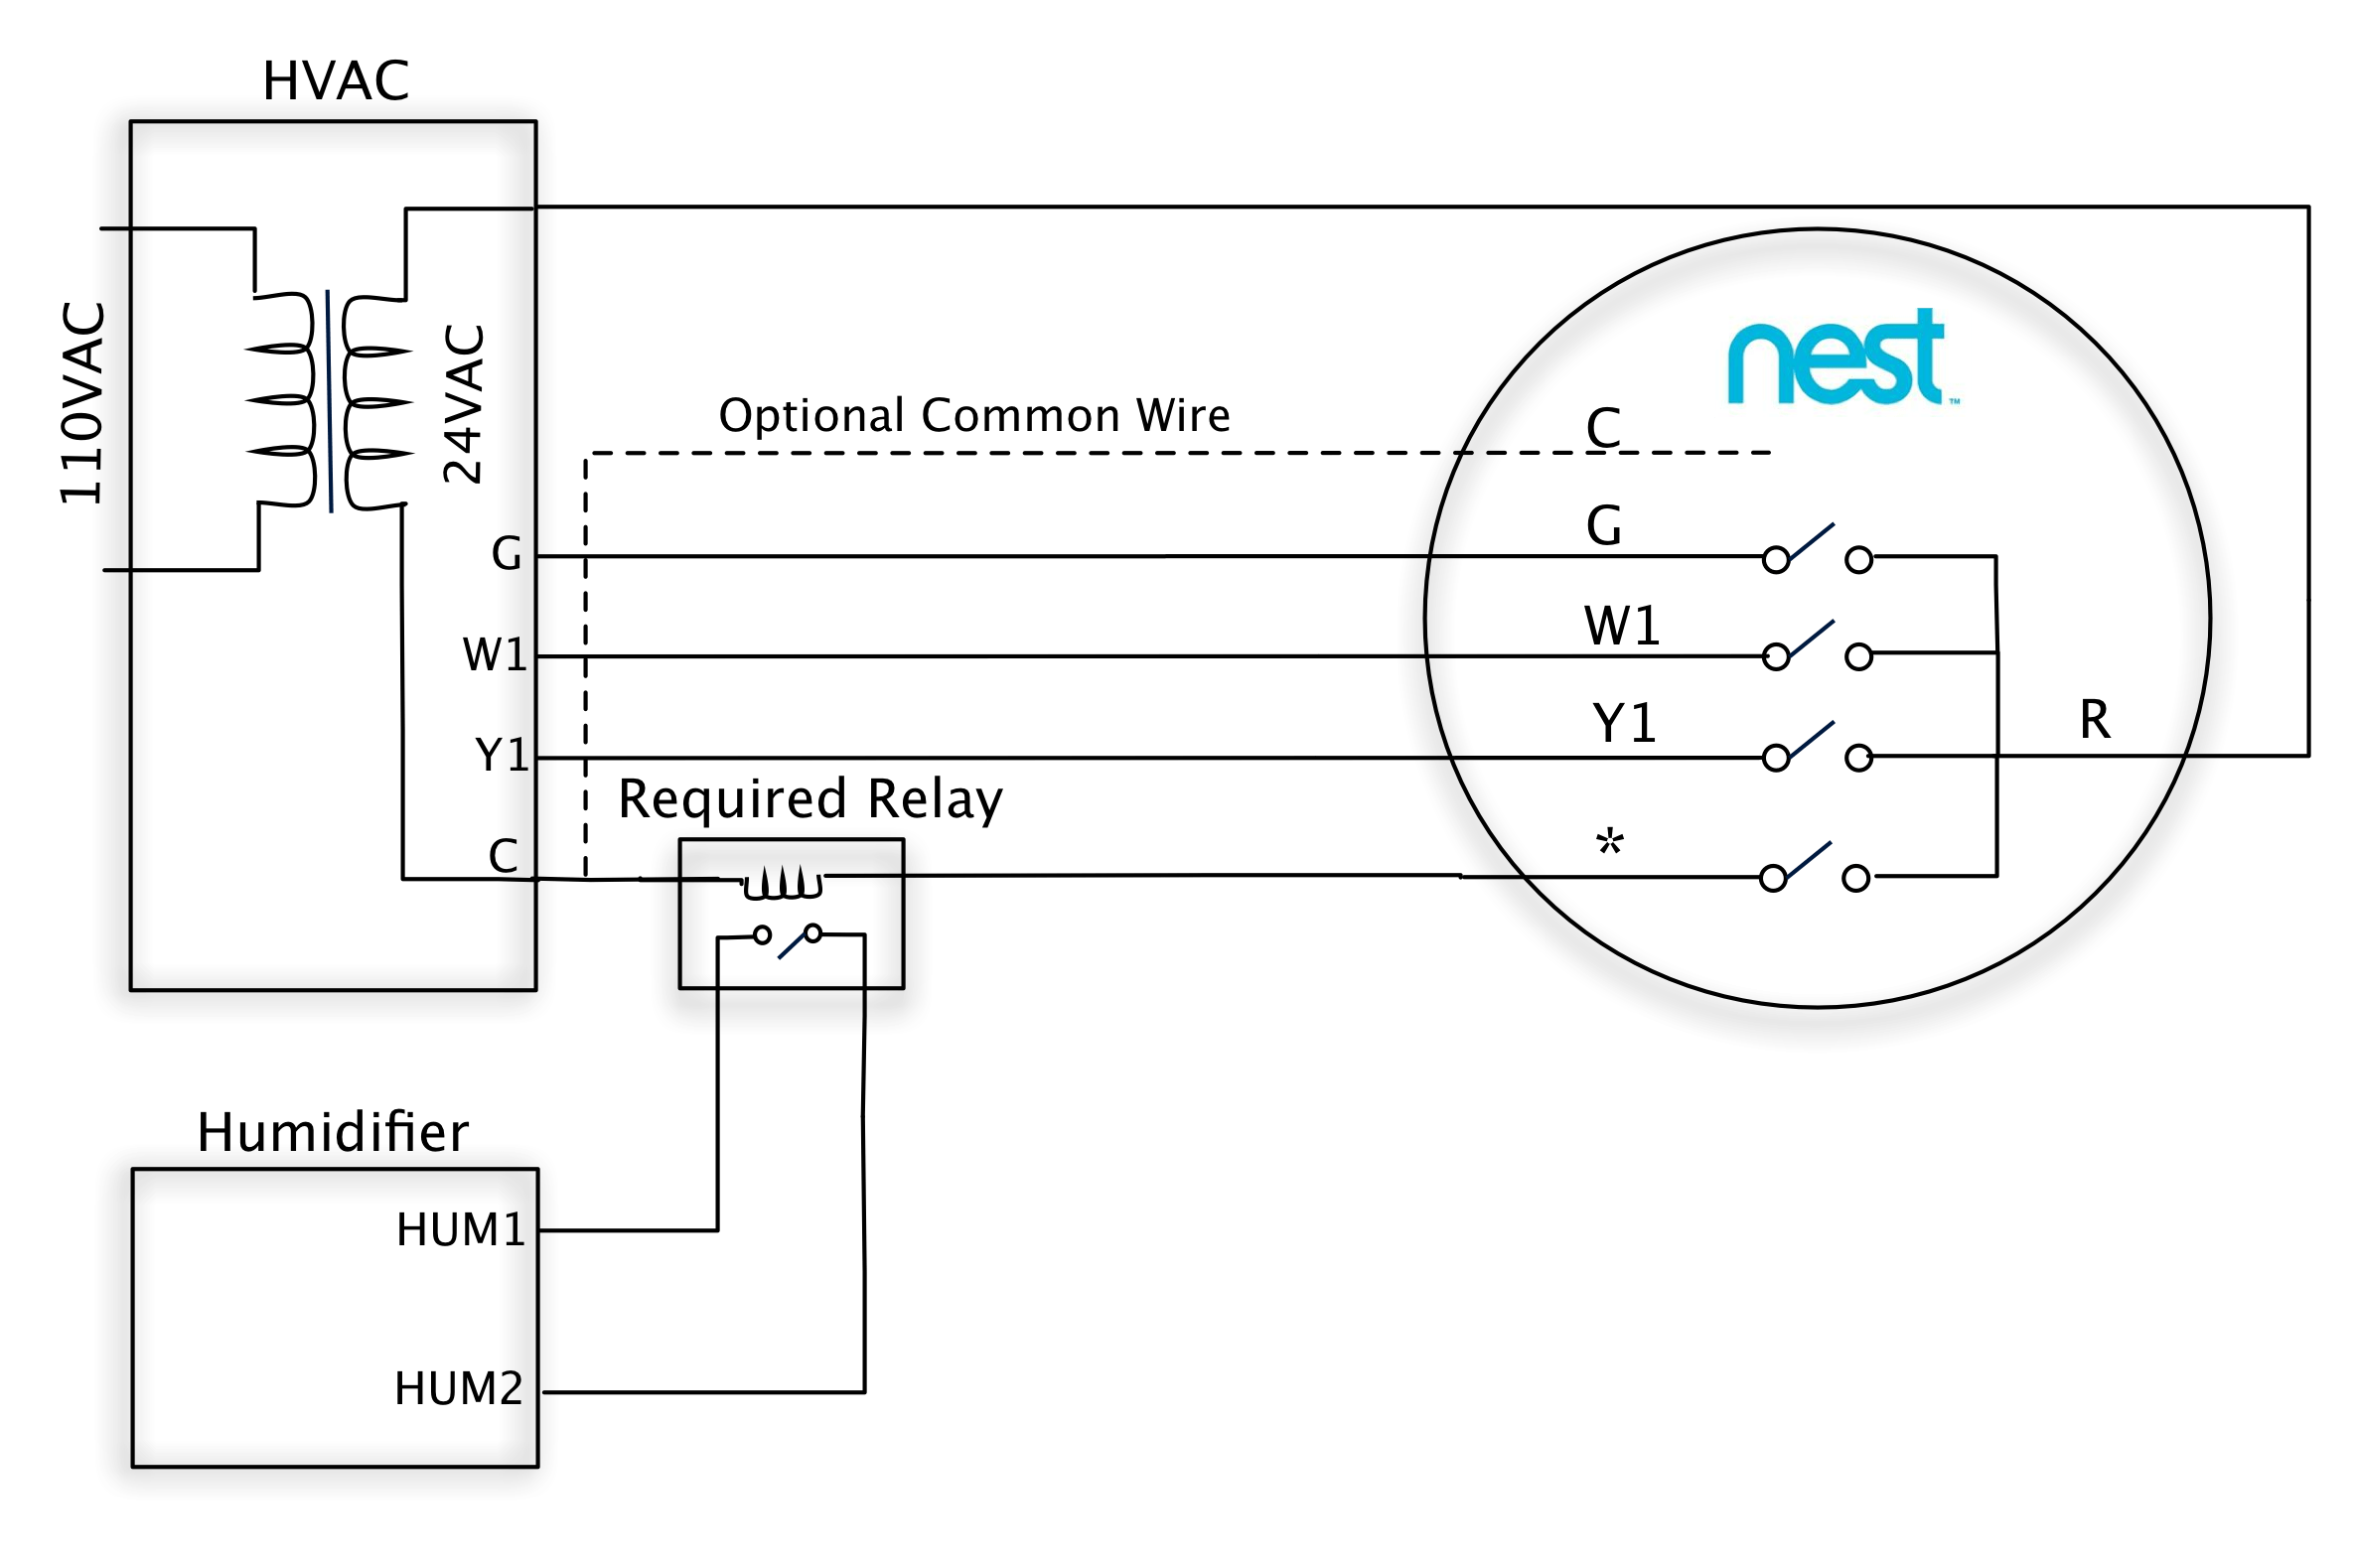 nest humidifier wiring diagram data flow for event management system installing lennox to a doityourself